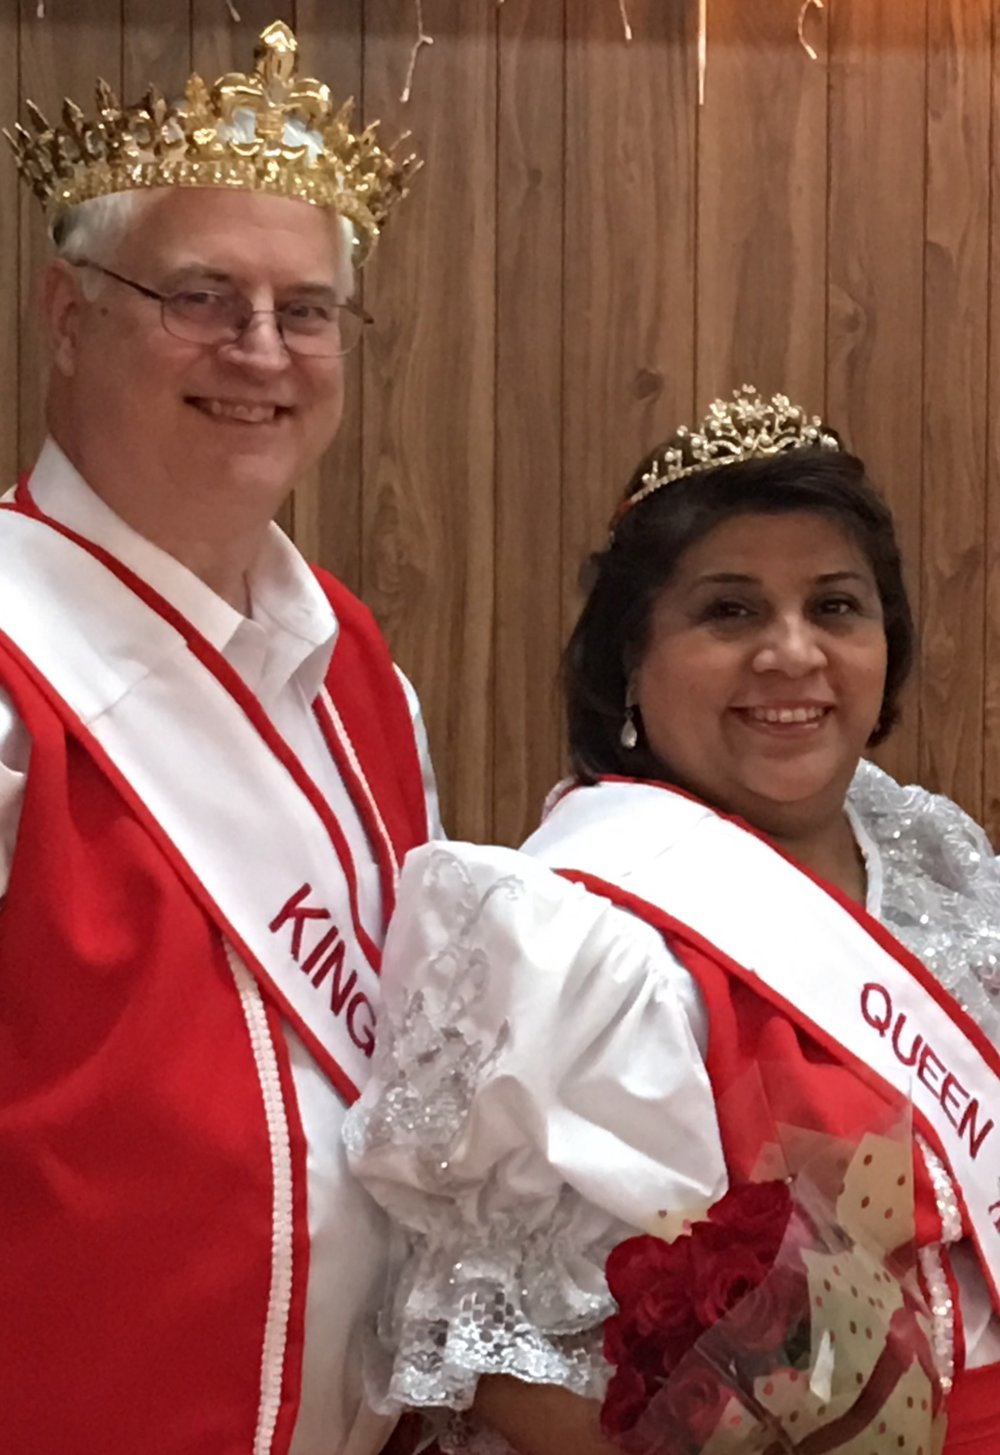 Stanley and Betty Nemec of Temple were crowned  P.o.L.K. of A Texas Chapter 1 as 2017 King and Queen recently.